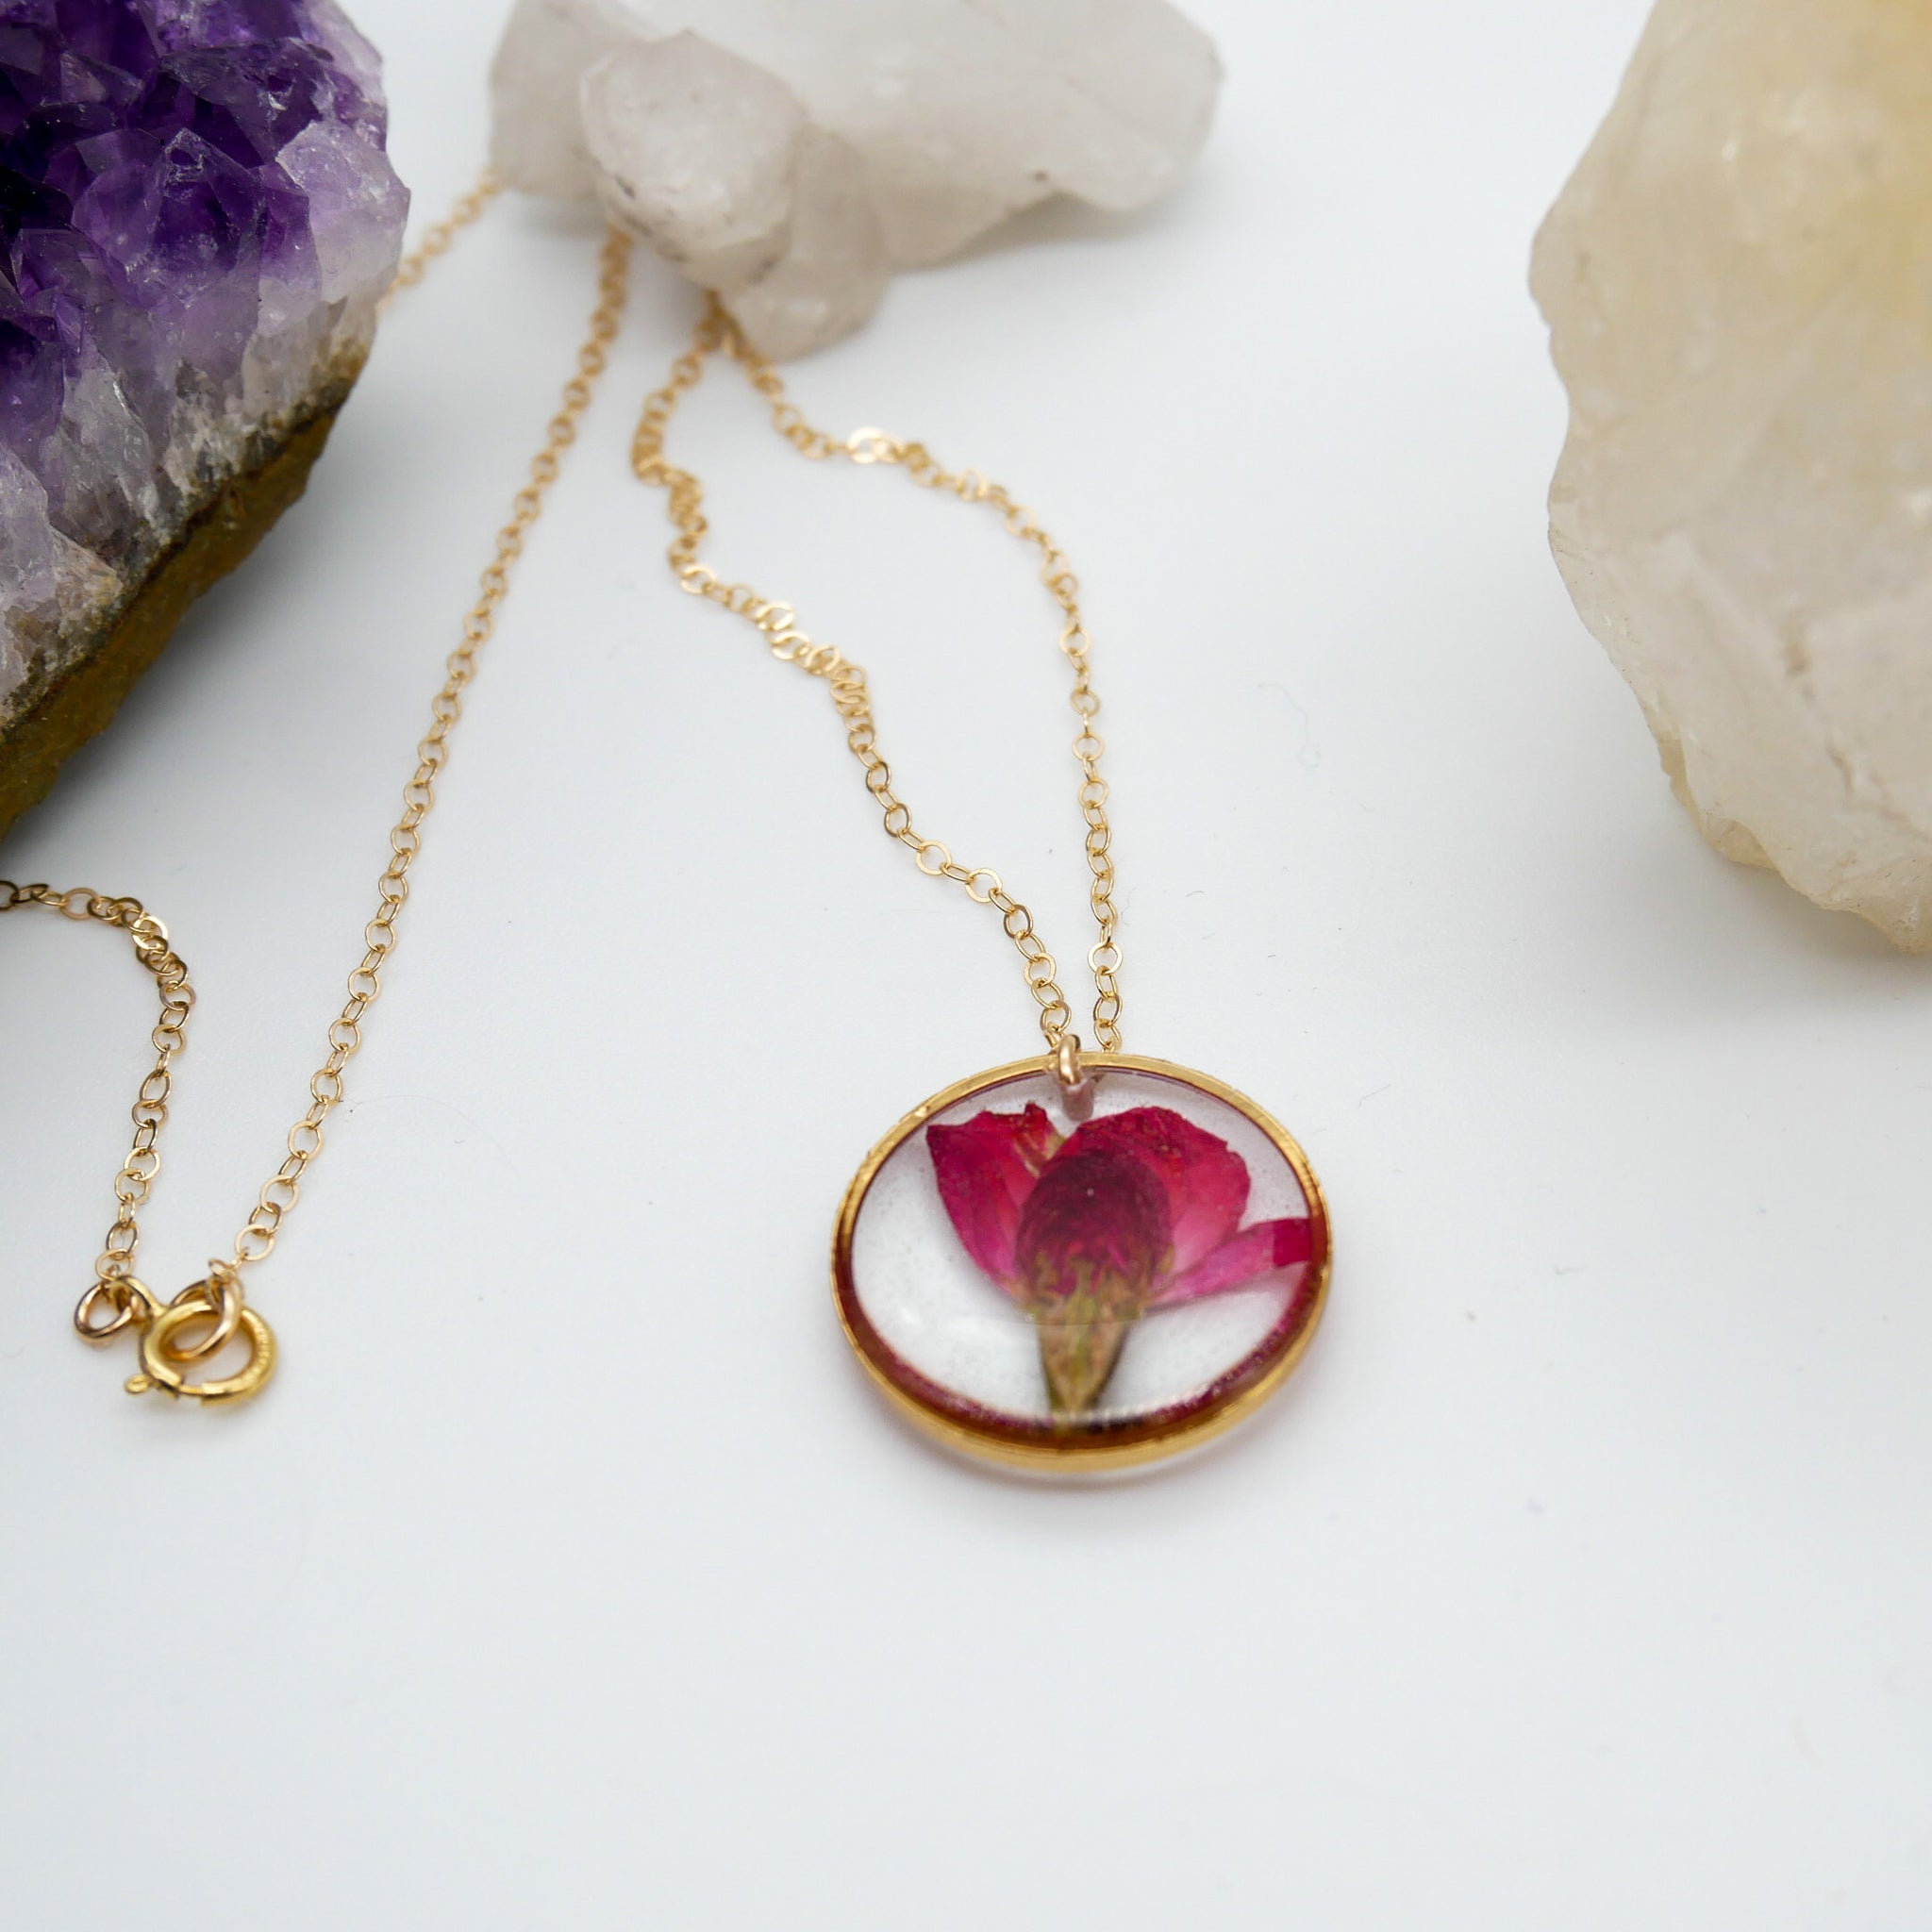 Dainty Rose Charm Necklace